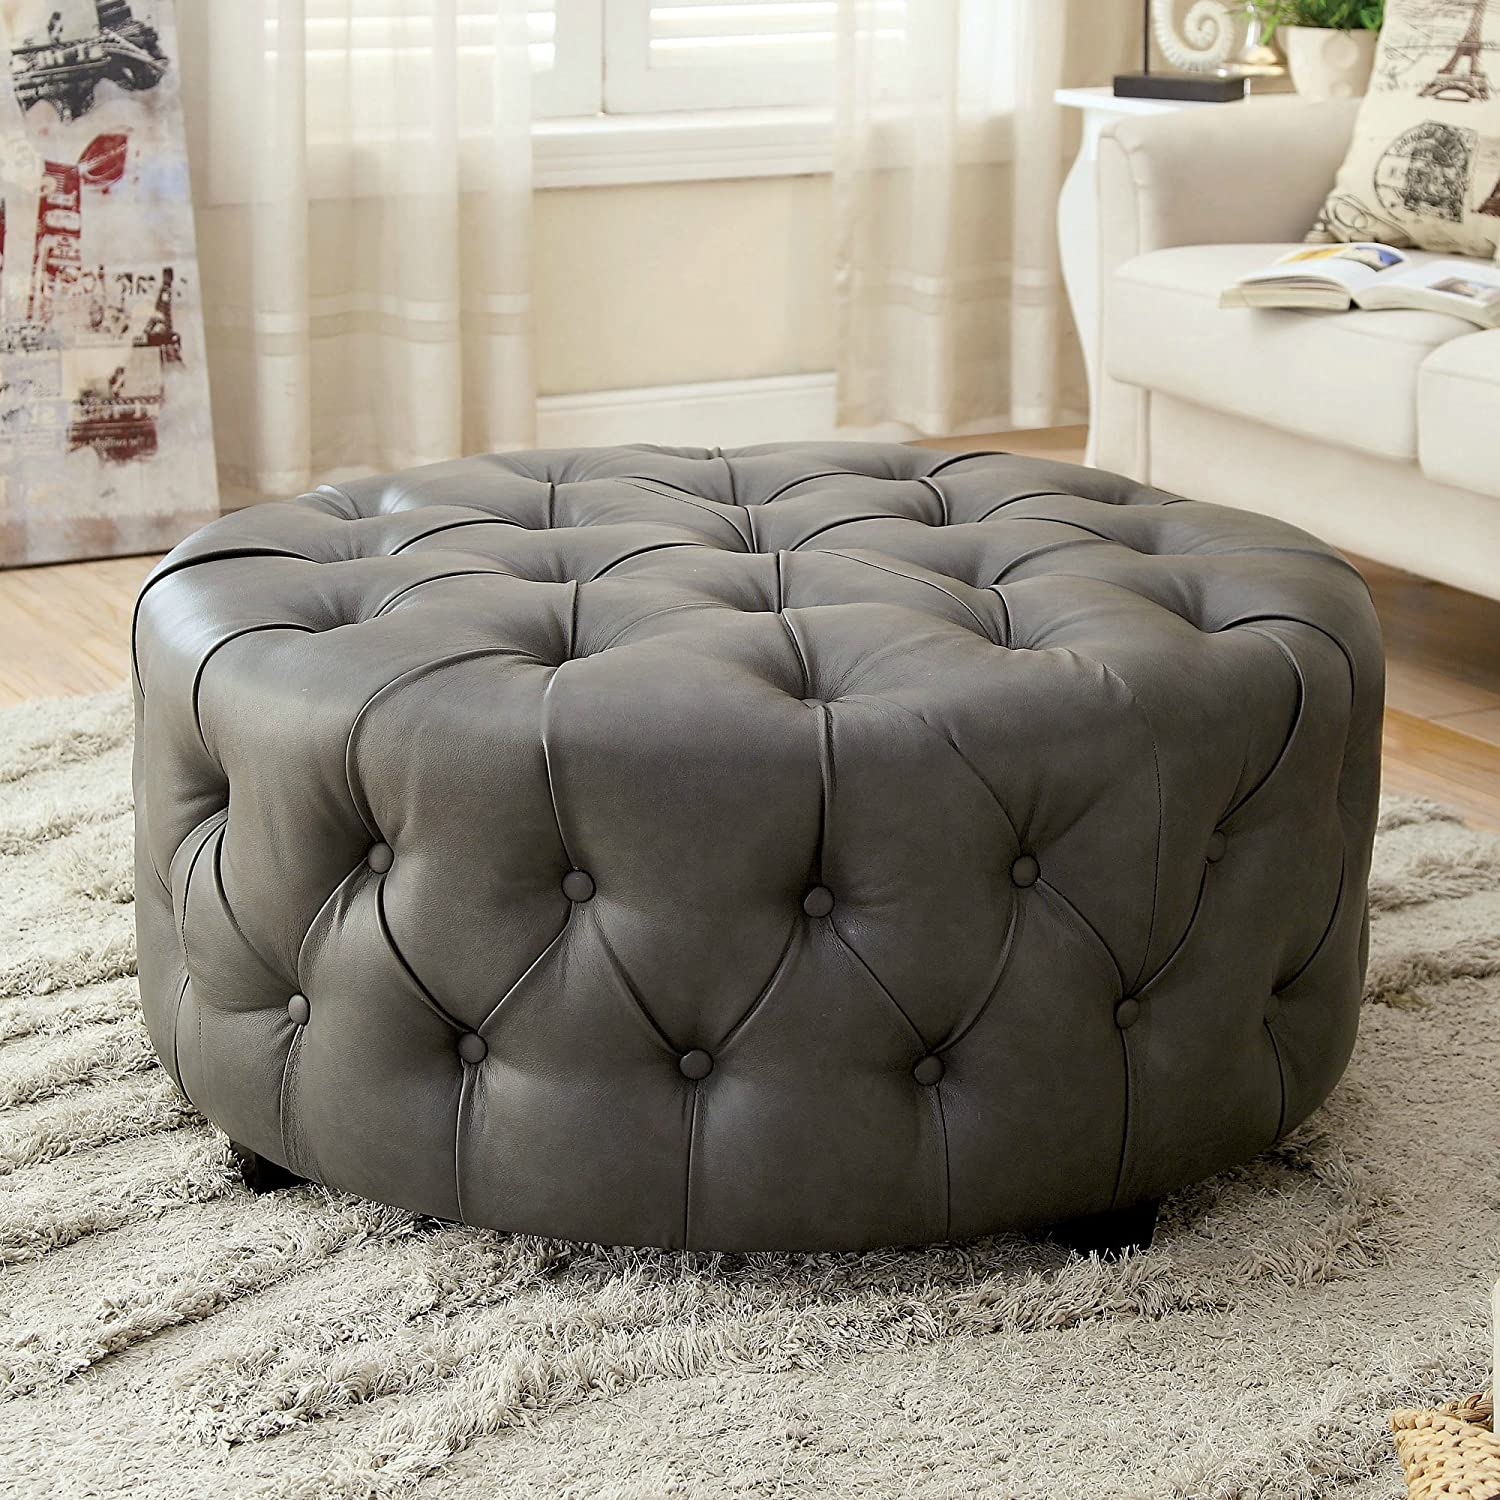 Amazon com tufted round leather ottoman large grey cocktail modern kitchen dining